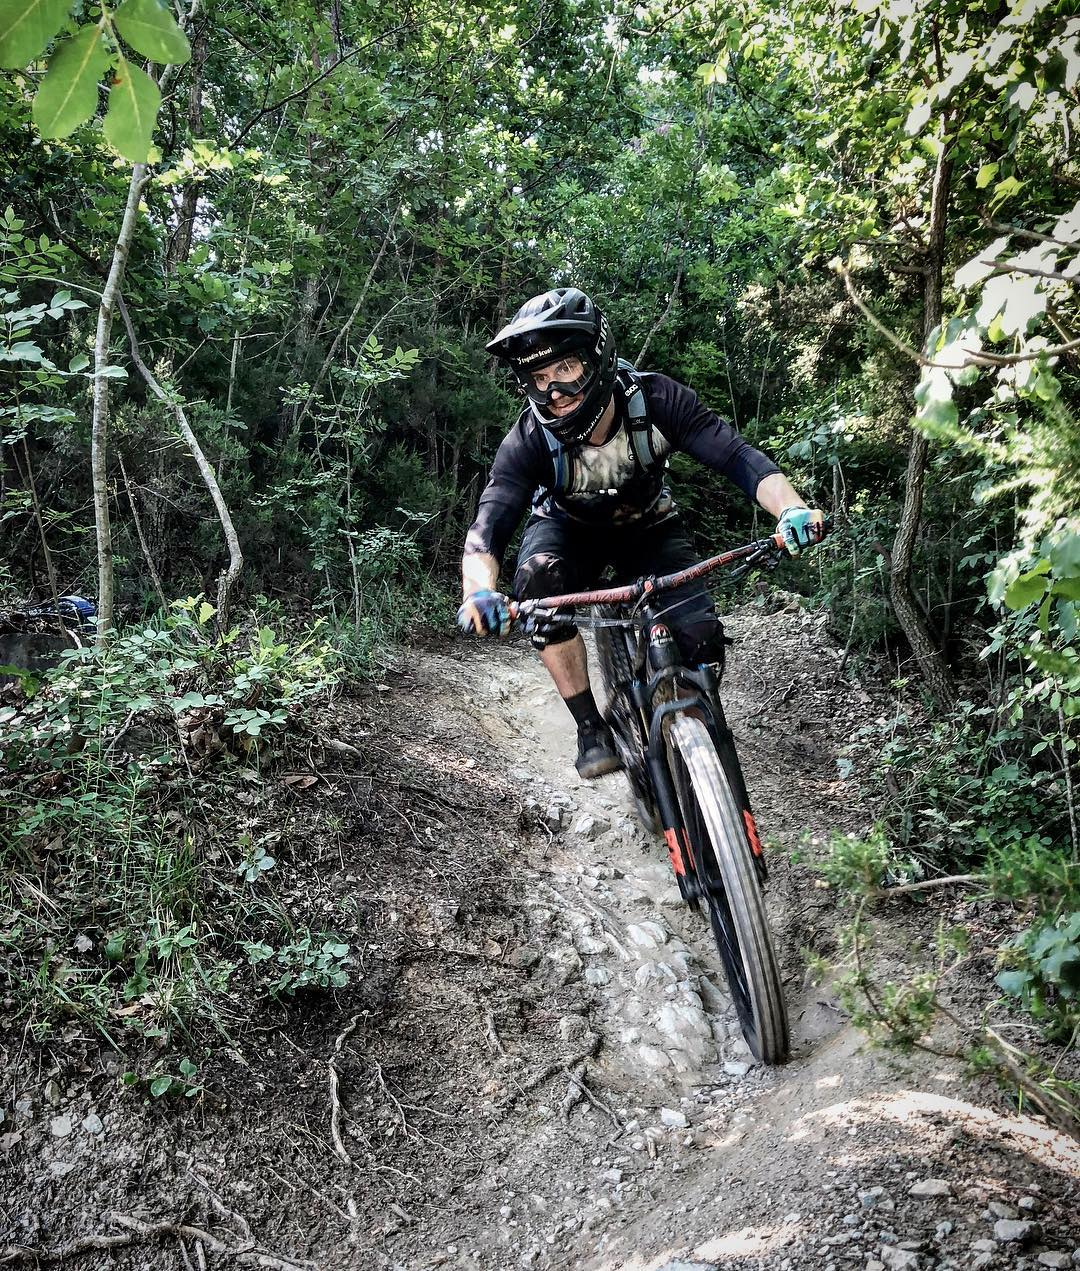 Here in Finale Ligure to get ready for the Helveticup Enduro Race at home in @engadinscuol next Saturday, June 2nd. BTW they are still looking for volunteers for the event. If you want to help -> contact the organizers here:  helfer@ses-s-chellas.ch | @ses_s_chellas : @raphwerner